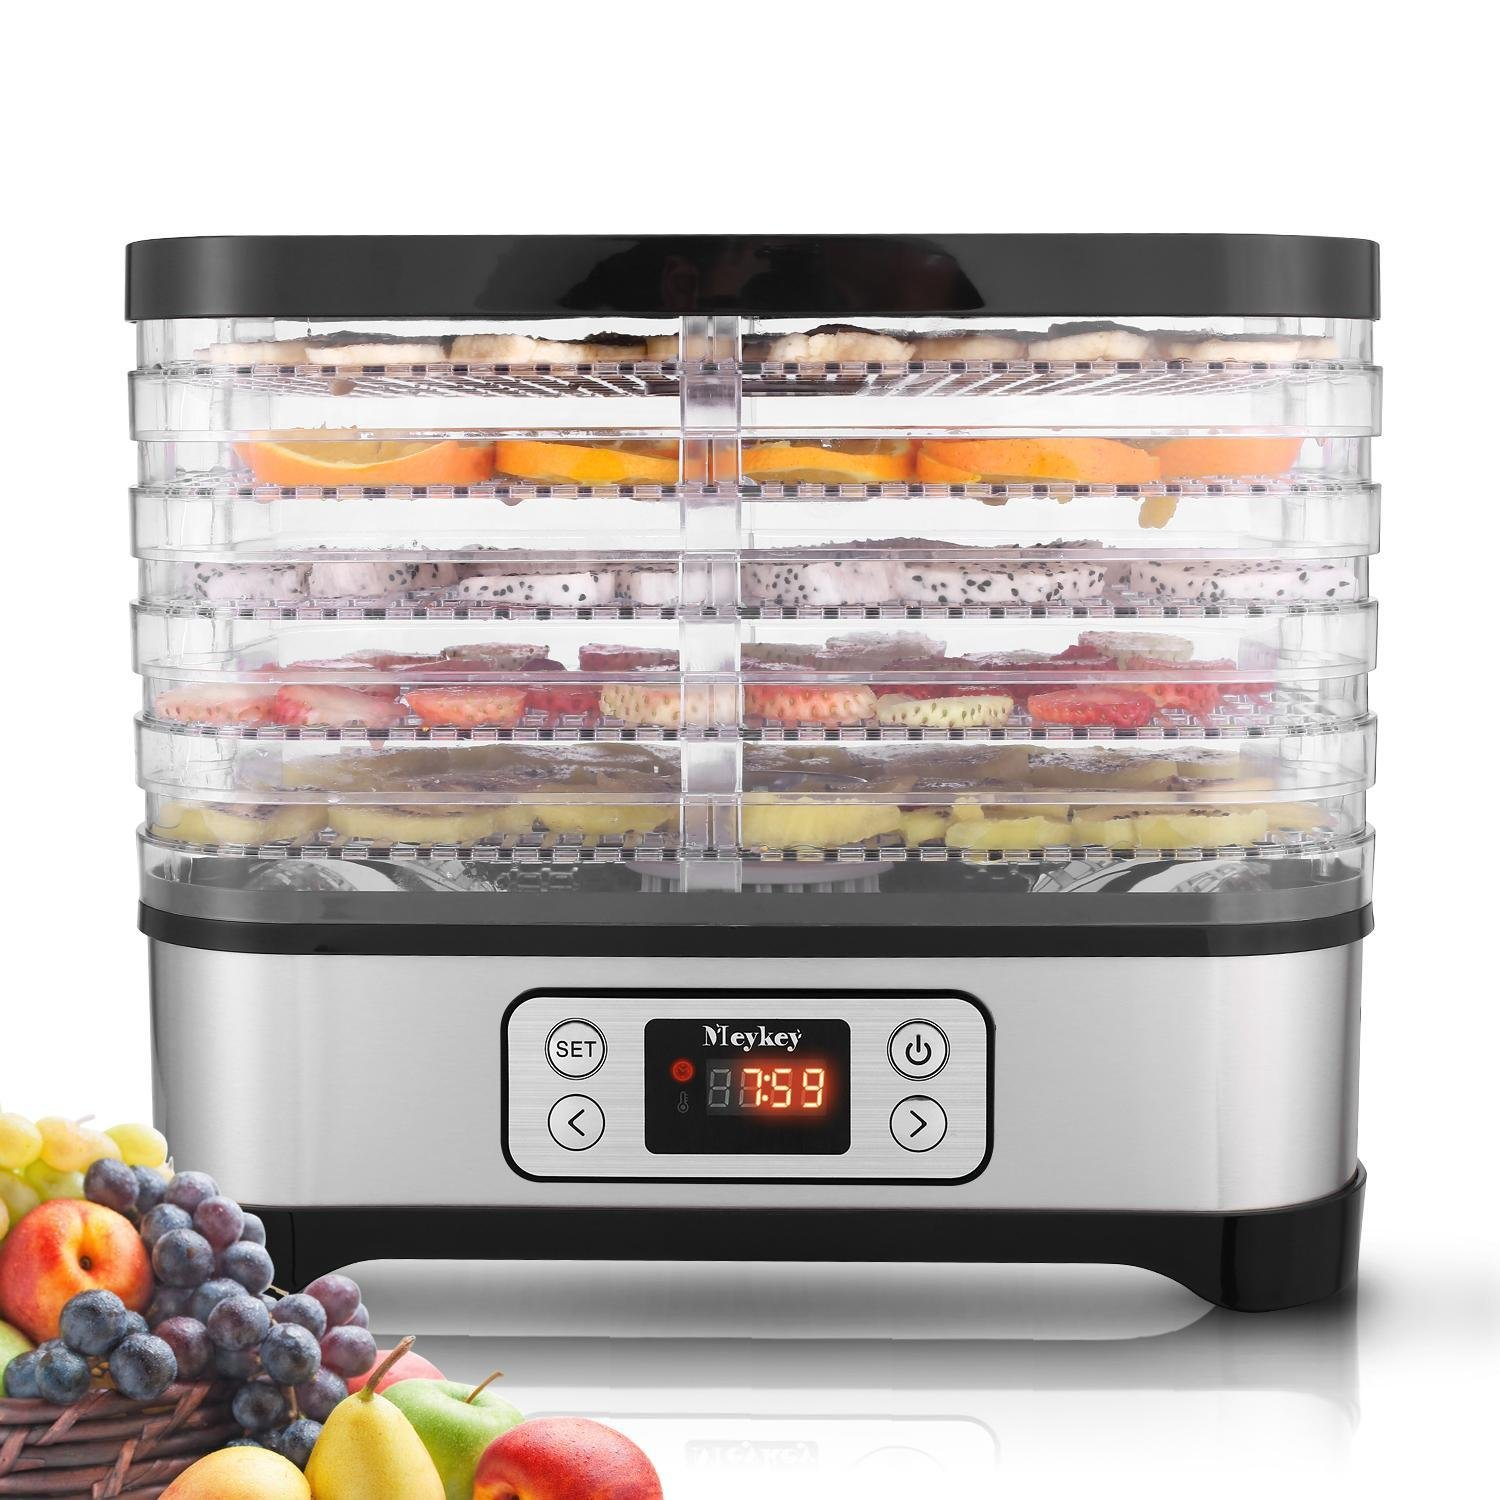 Hauture Food Dehydrator Machine, Digital Timer and Temperature Control, 5 Trays, for Jerky/Meat/Beef/Fruit/Vegetable, BPA Free by Hauture (Image #1)